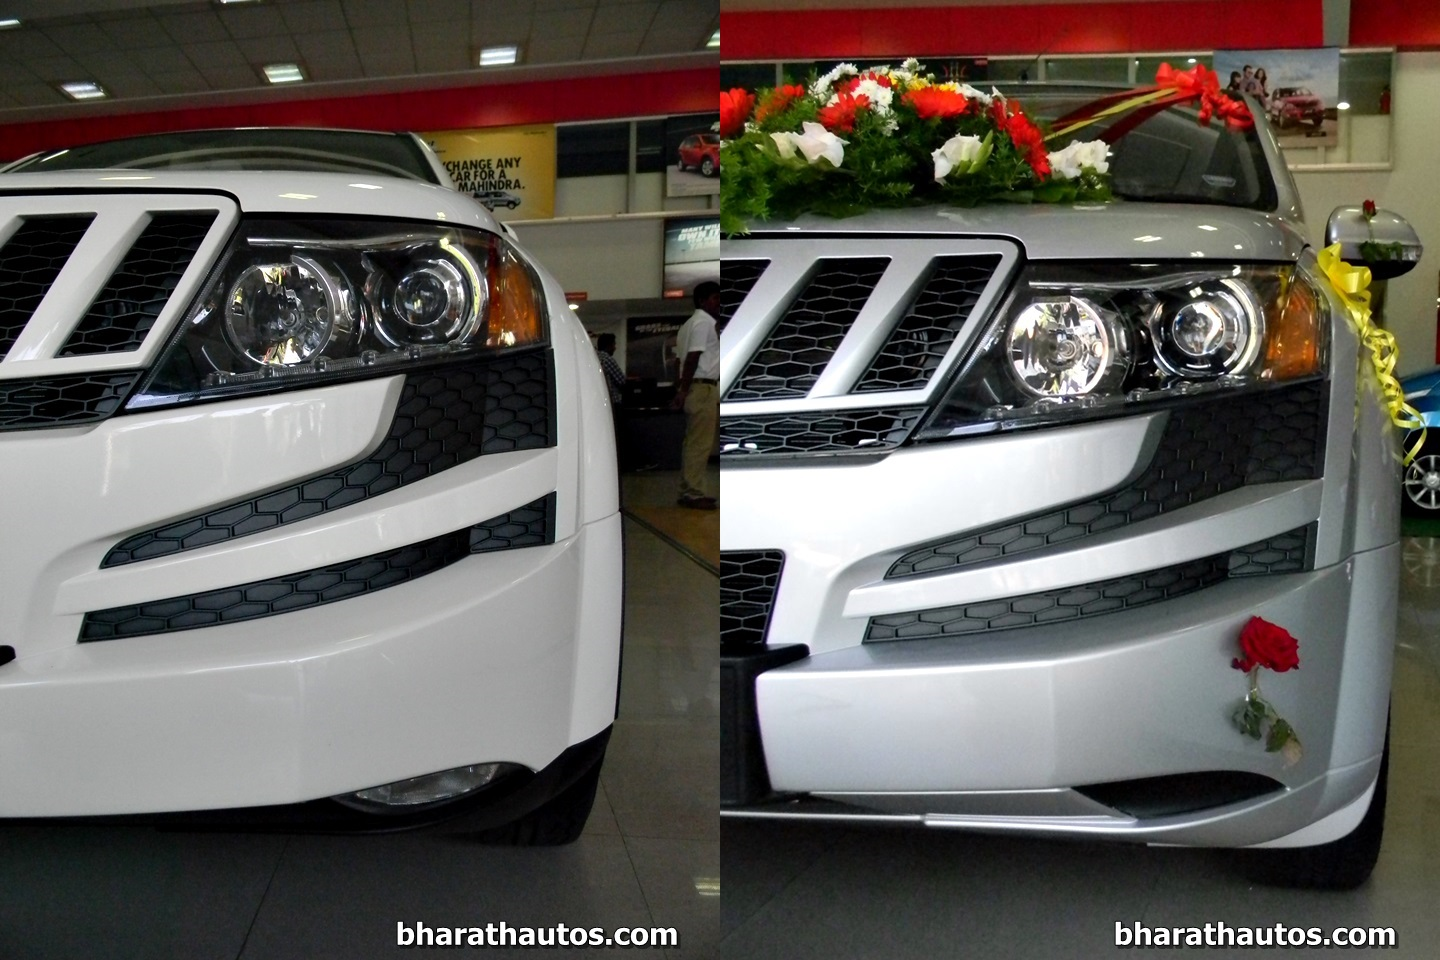 Mahindra Xuv500 W8 And W4 Side By Side Visual Comparison